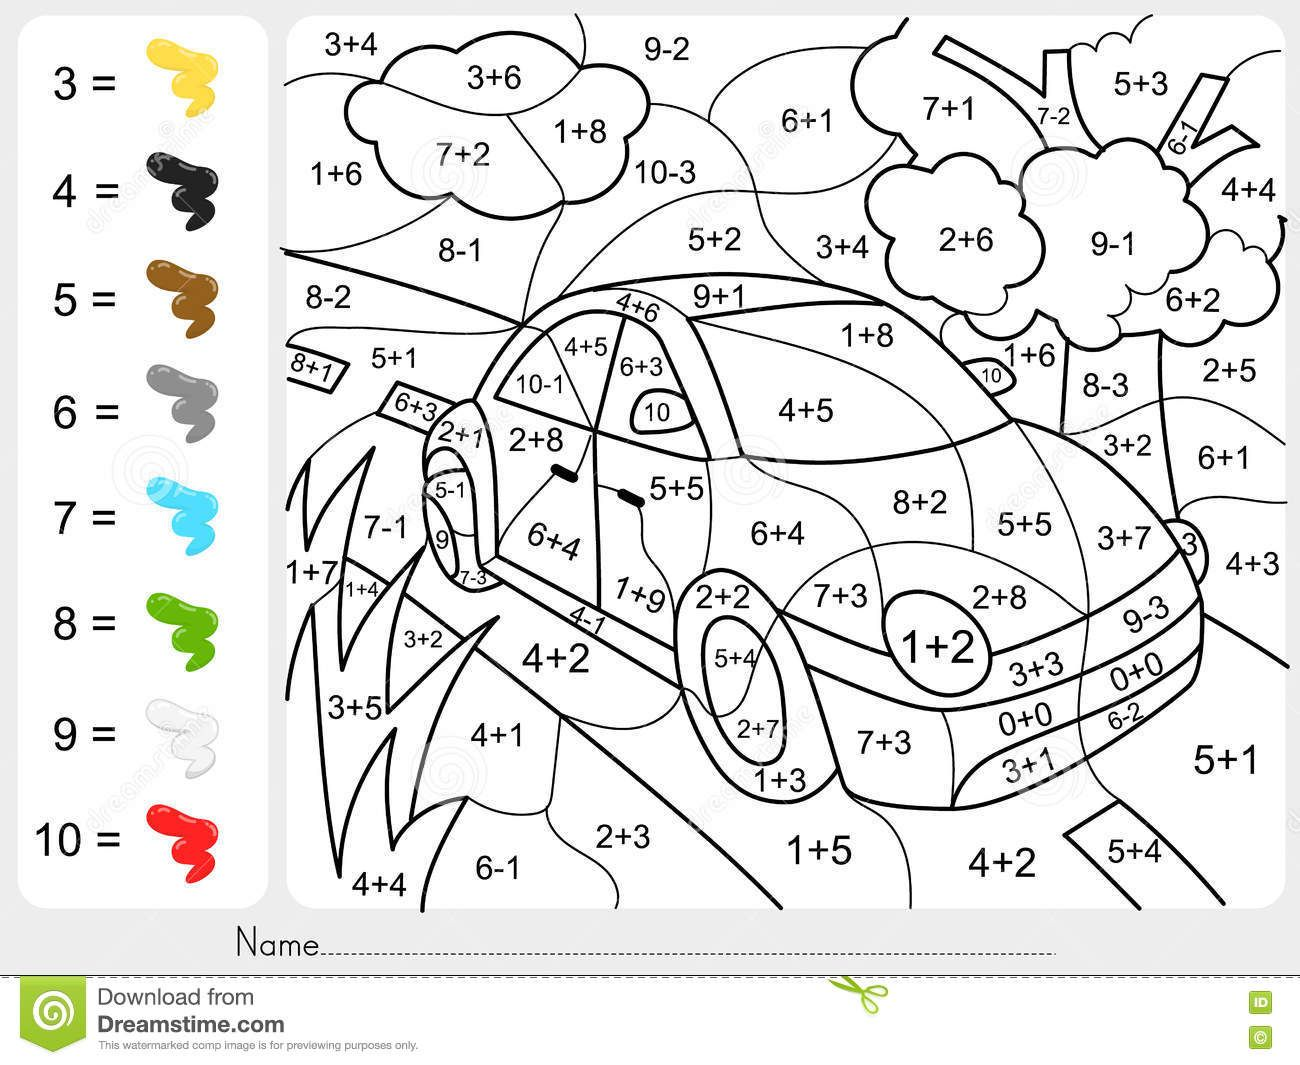 worksheet Coloring Addition Worksheets imagen relacionada matematik pinterest addition worksheets the best teacher worksheet color by kindergarten halloween colouring additio